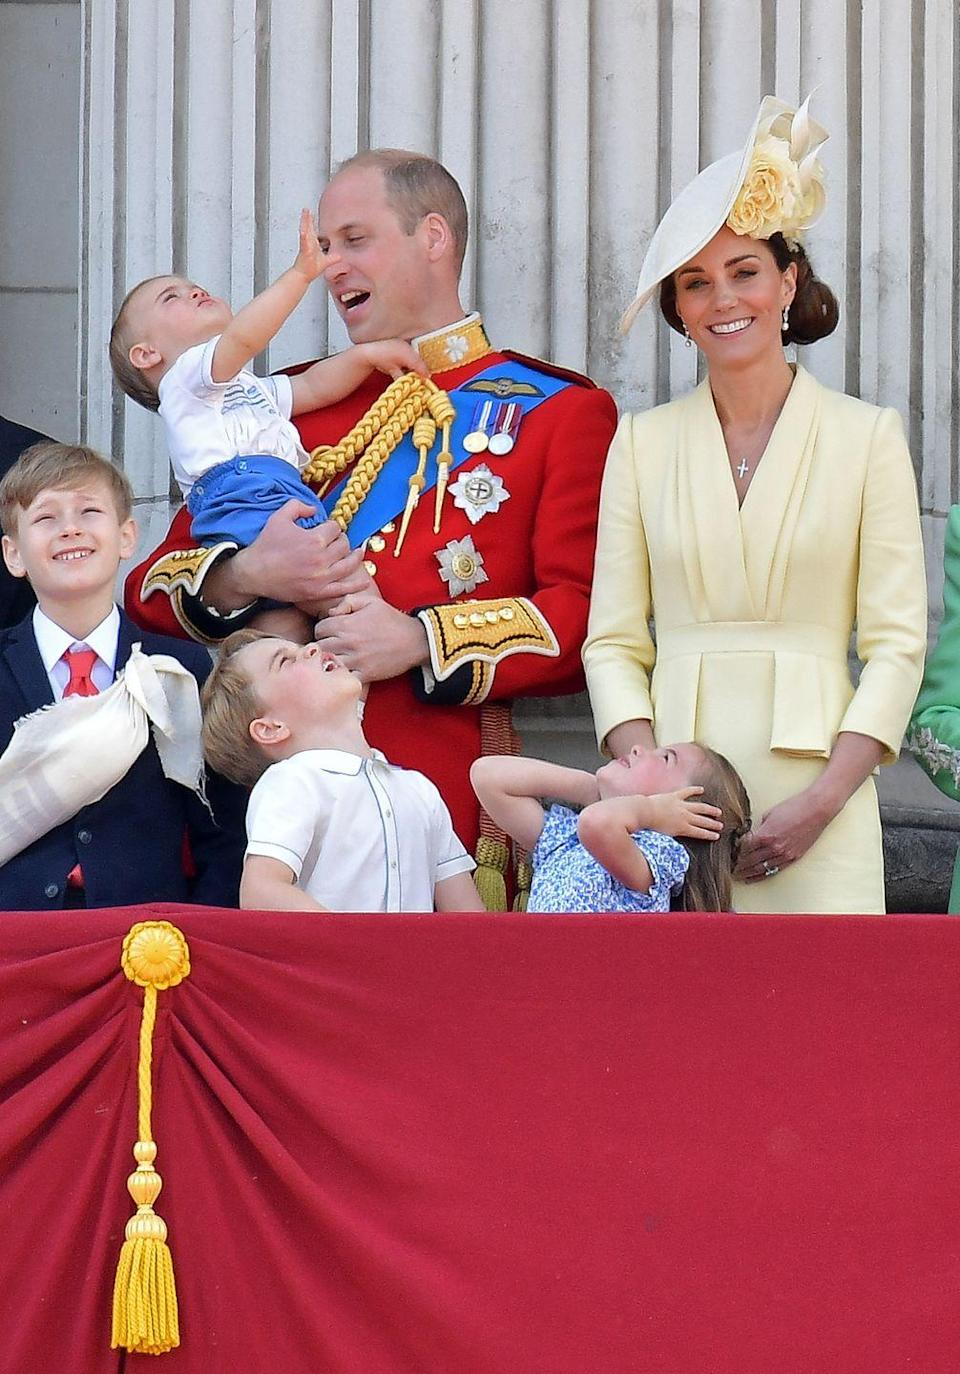 <p>Prince Louis, Prince George, and Princess Charlotte watch a Royal Air Force plane fly by at the Queen's annual Trooping of the Colour celebration.</p>